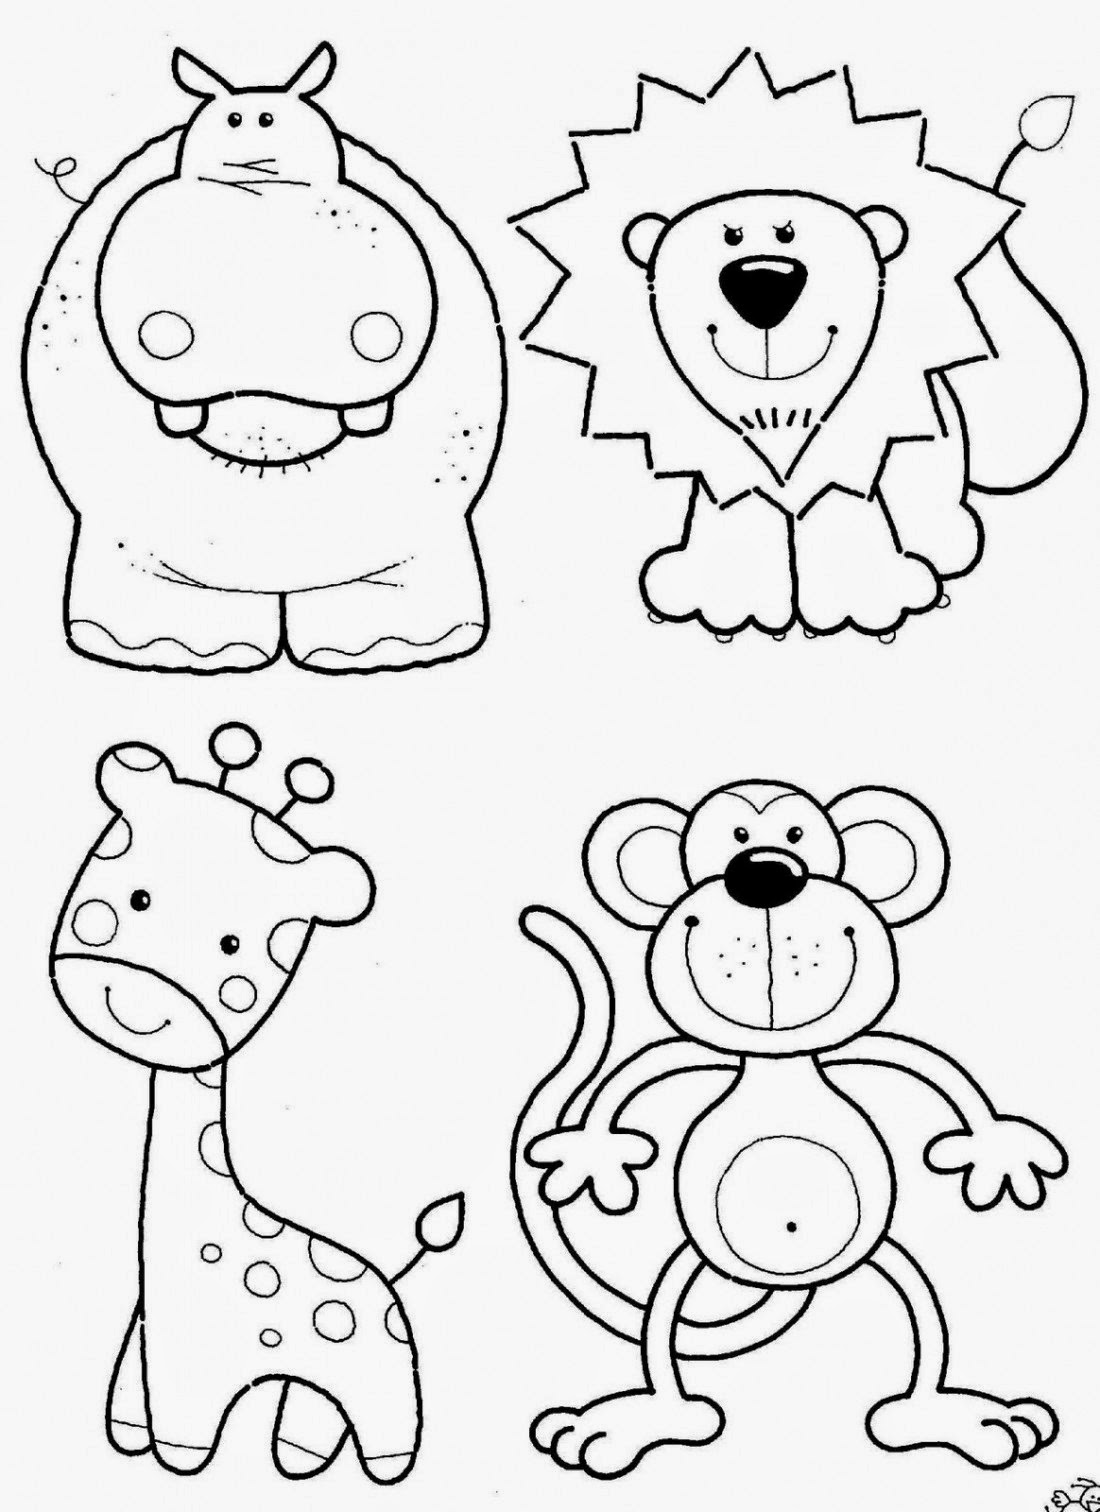 online printable coloring pages to improve children u0027s imagination